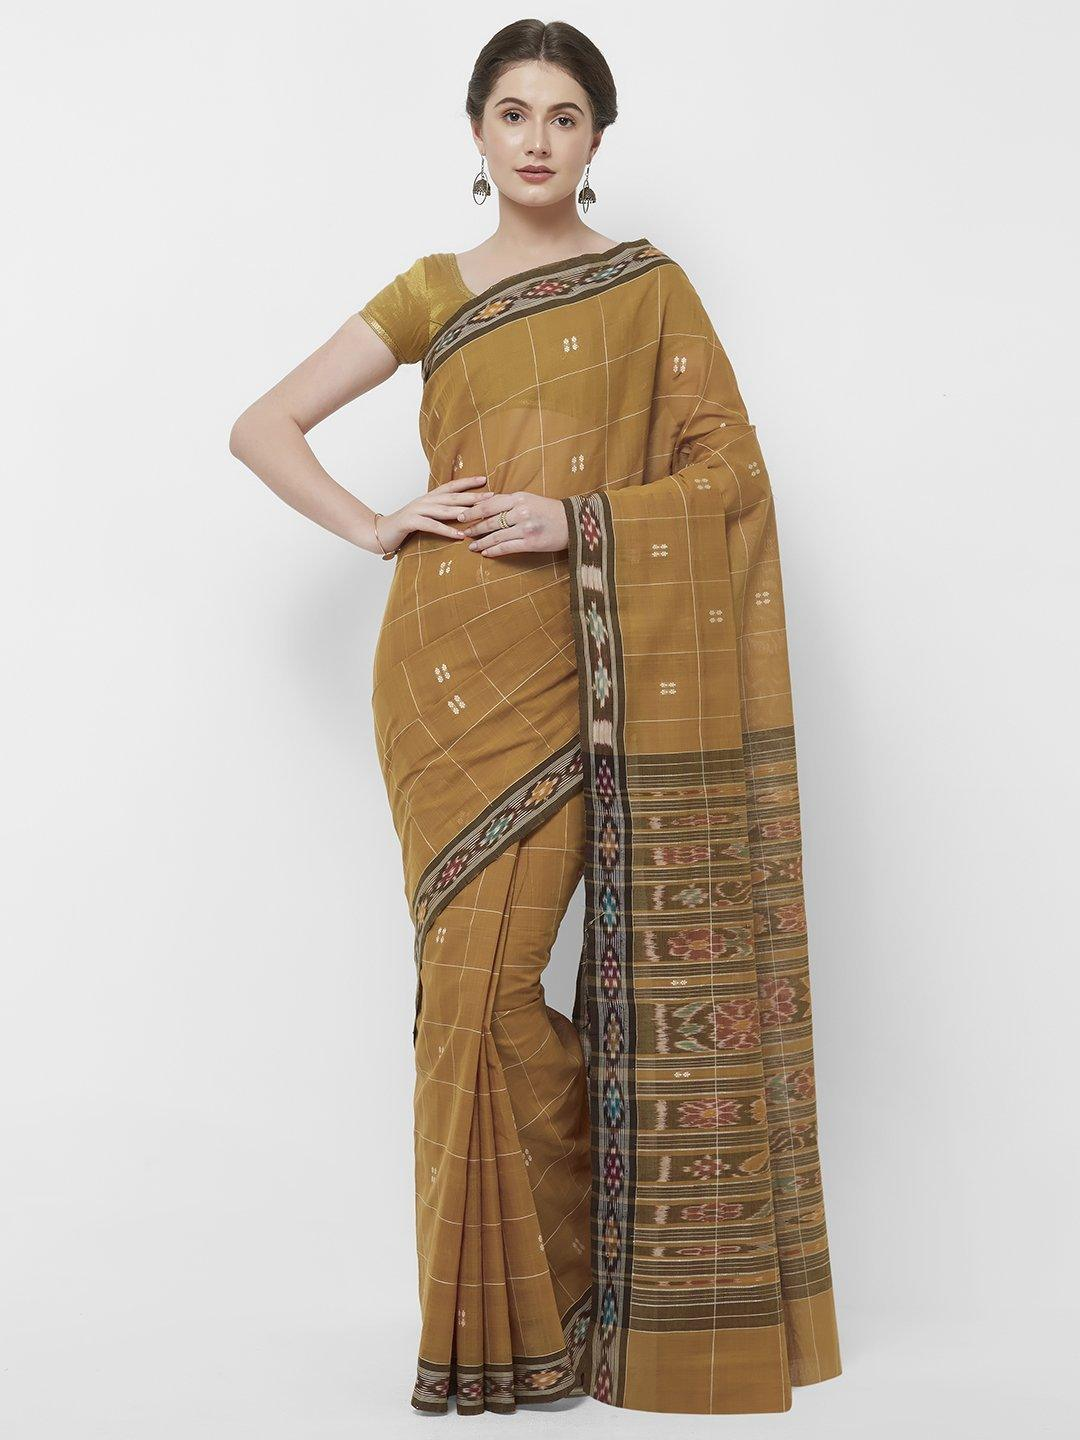 CraftsCollection.in -Mustard Odisha Cotton Saree with matching Sambalpuri Blouse